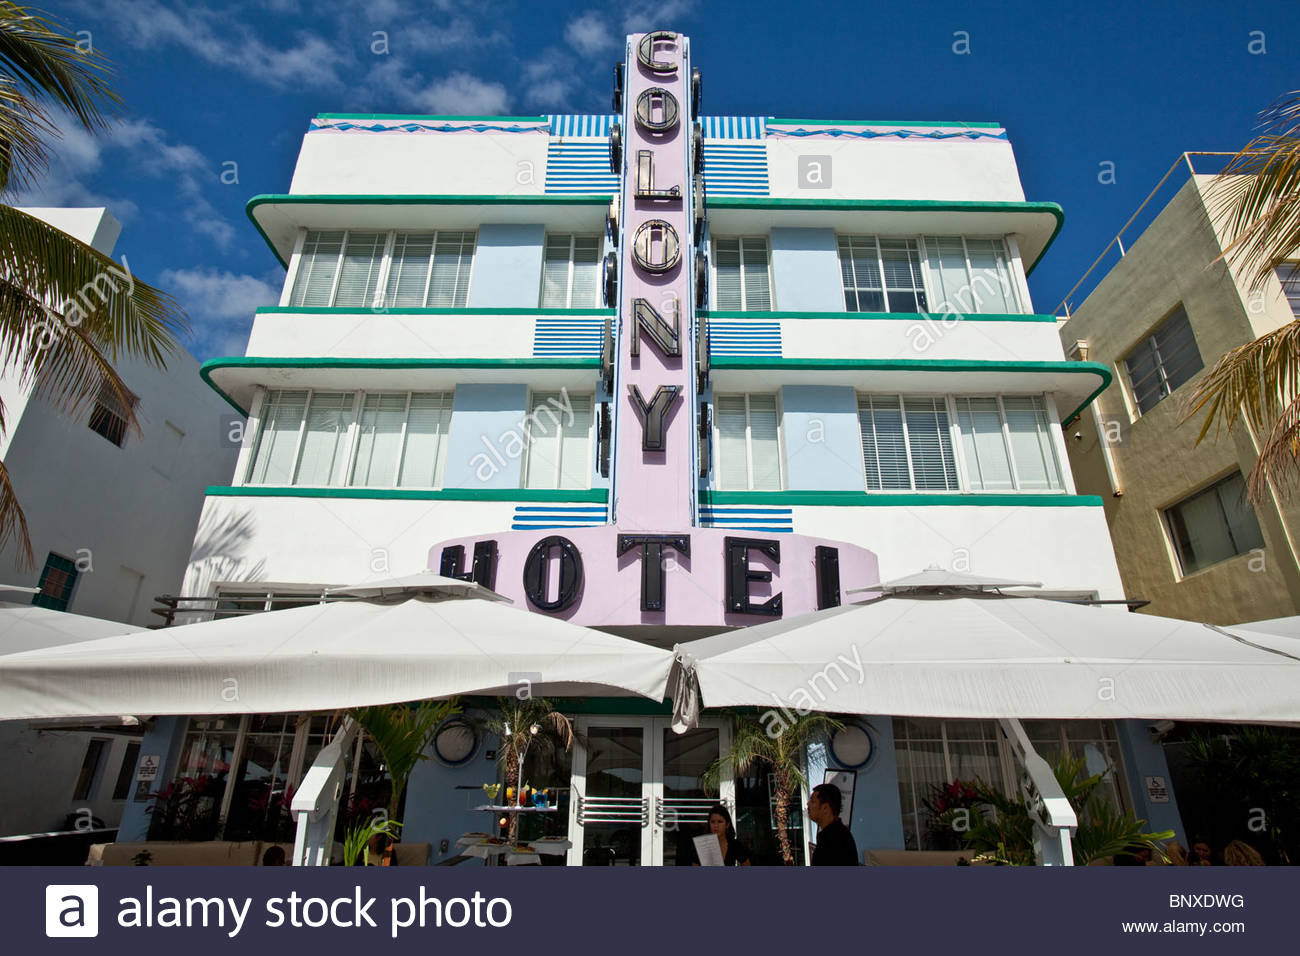 Colony Hotel, Art Deco Hotel, Ocean Drive, South Beach, Miami, Florida, Usa - Stock Image